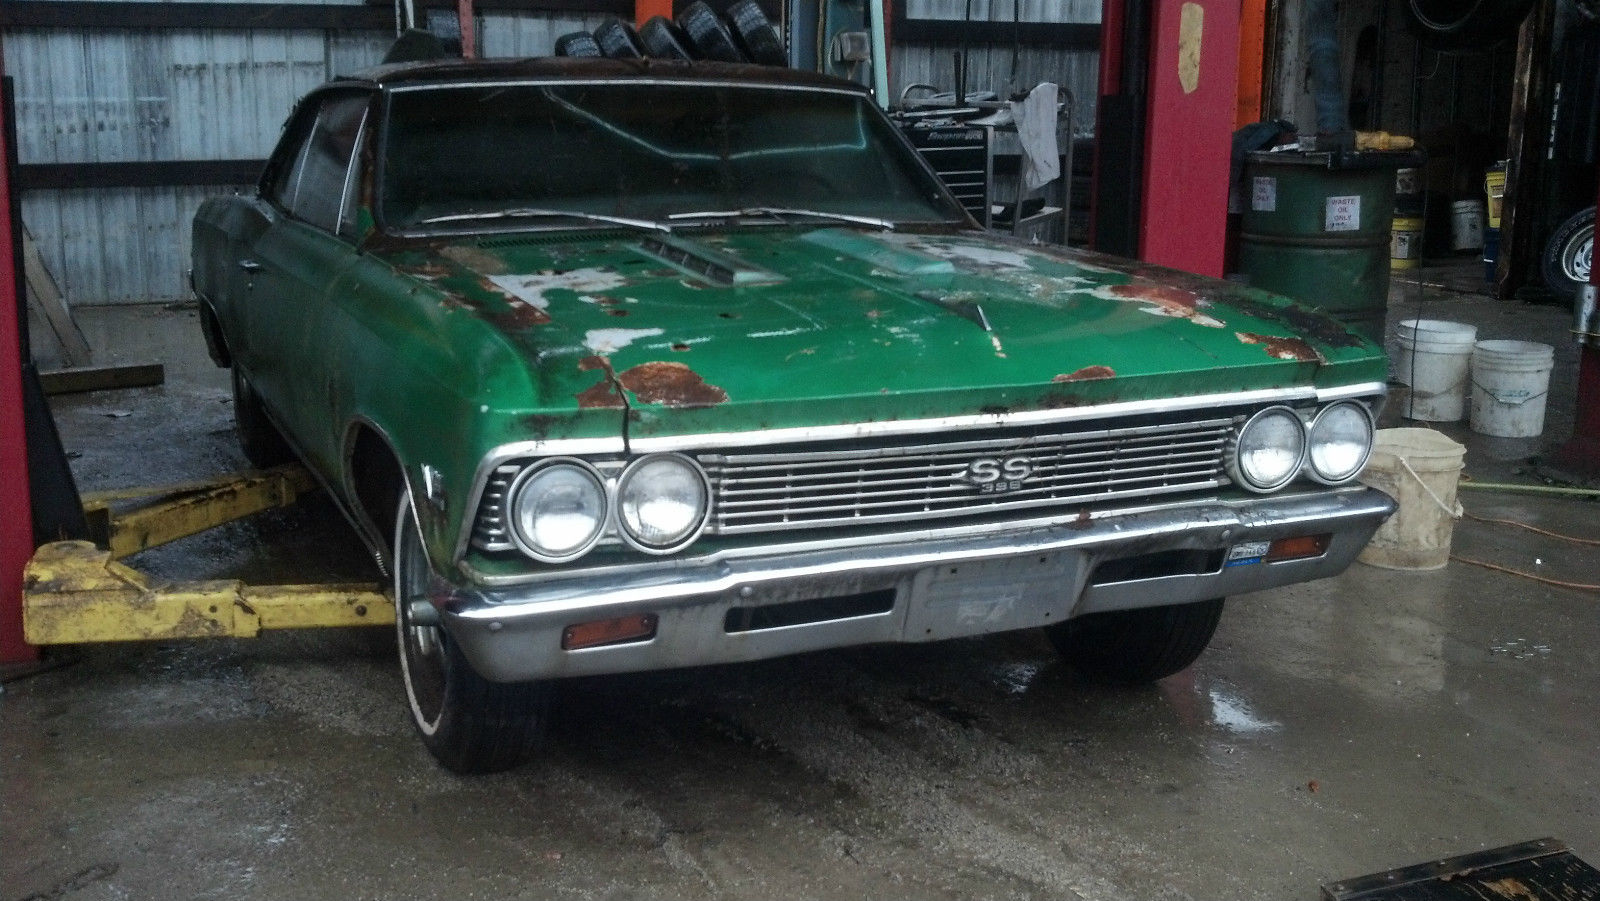 1966 Chevelle Ss 396 Convertible 138 Car Matching Numbers Classic Chevrolet Malibu